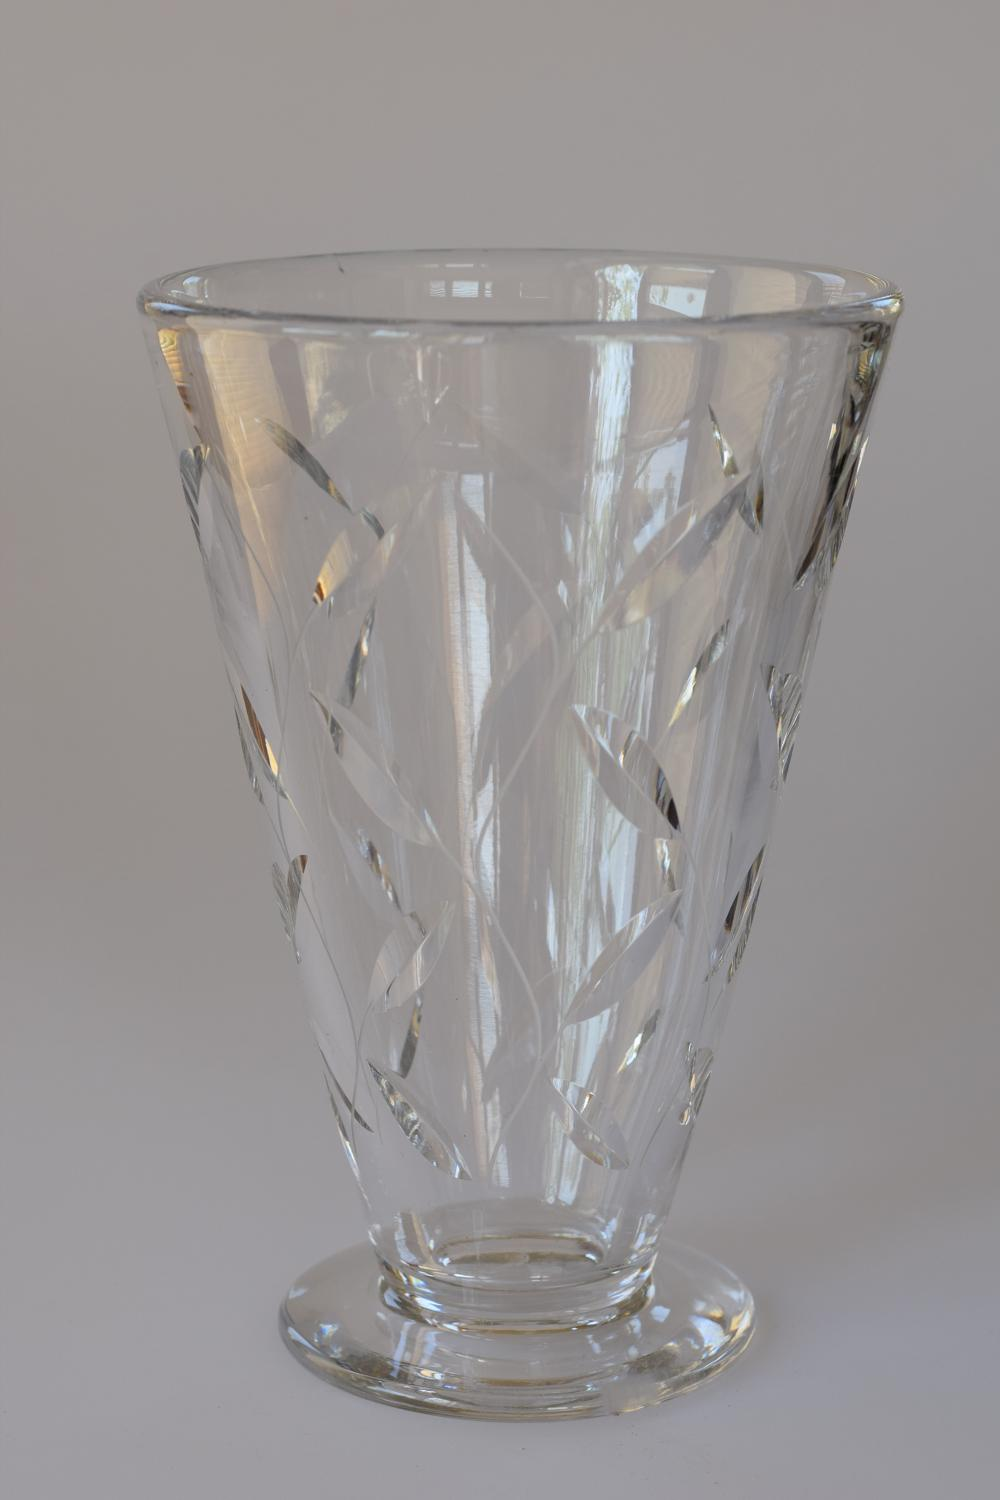 Leaf design vase by Clynne Farquarhson.